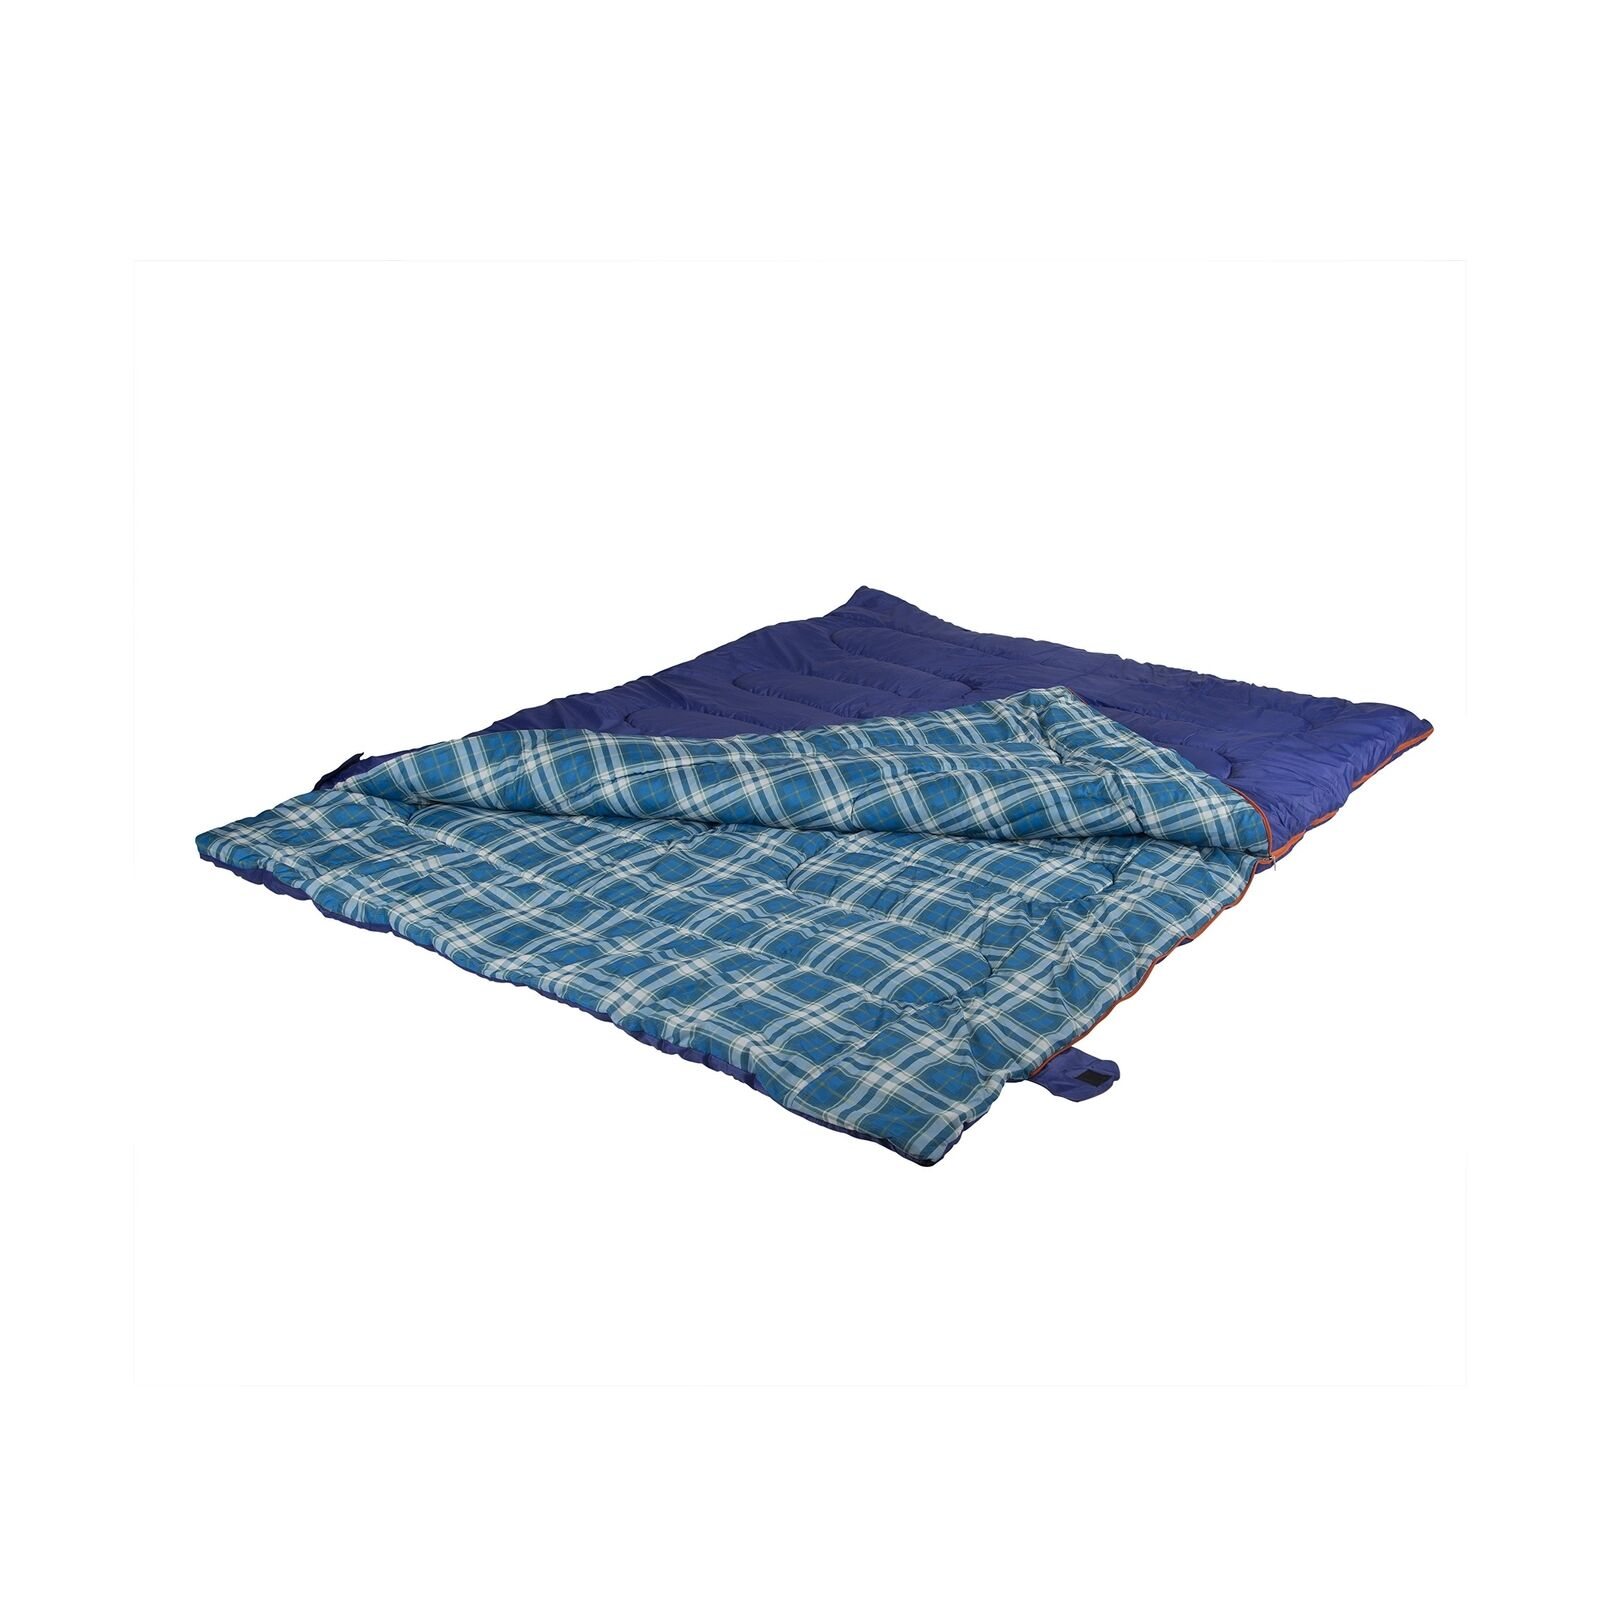 Double 2-Person Sleeping Bag, 87  x 66  Wide - Cobalt bluee